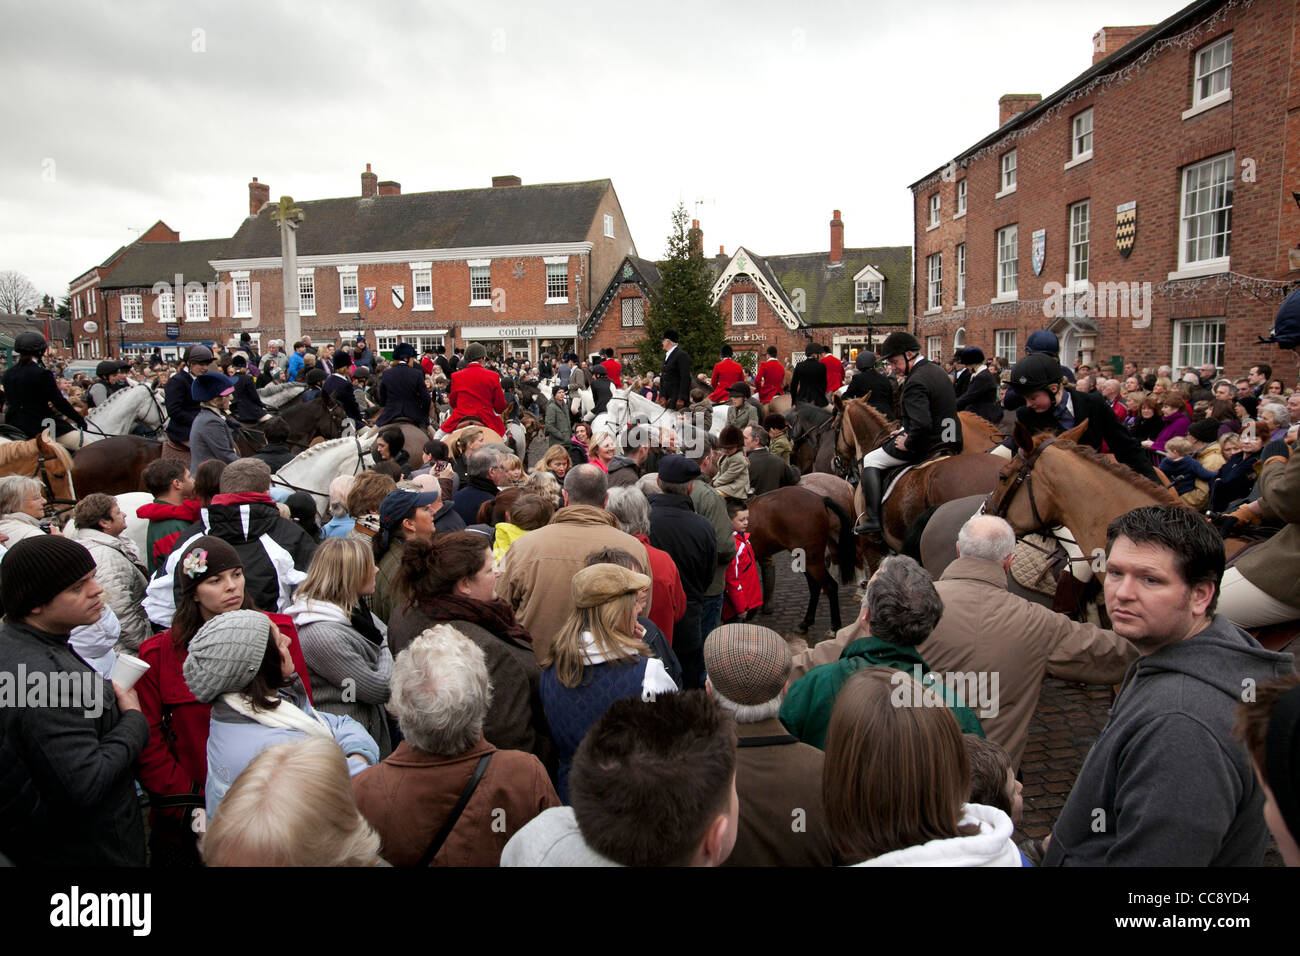 The annual  traditional hunt meet held in Market Bosworth square, Leicestershire on Boxing Day. Stock Photo